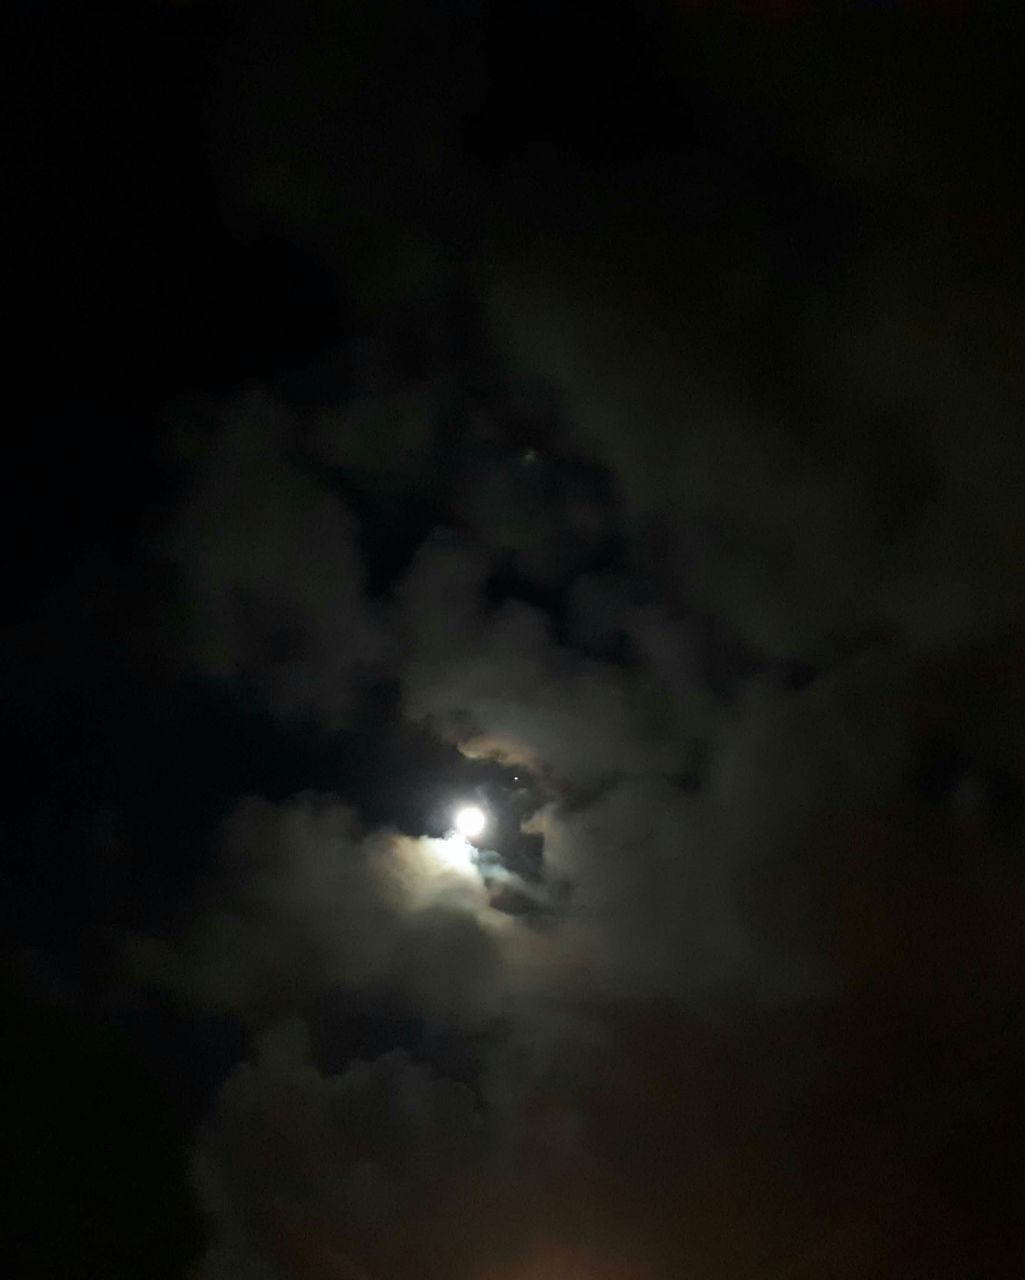 night, cloud - sky, moon, sky, nature, dark, low angle view, beauty in nature, scenics, sky only, no people, outdoors, storm cloud, illuminated, astronomy